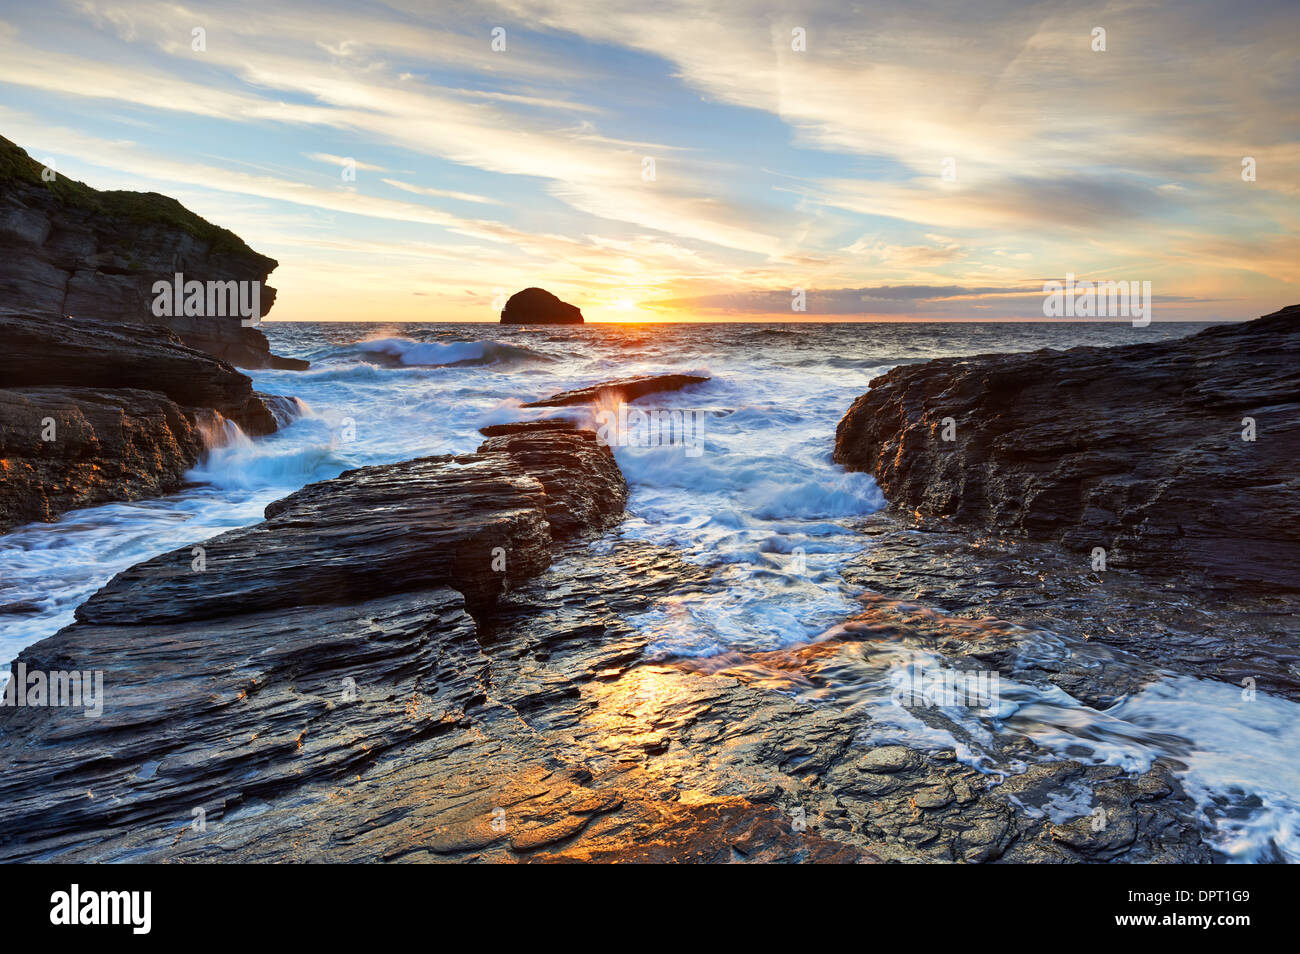 Evening light on the North Cornish Coast at Trebarwith Strand. - Stock Image